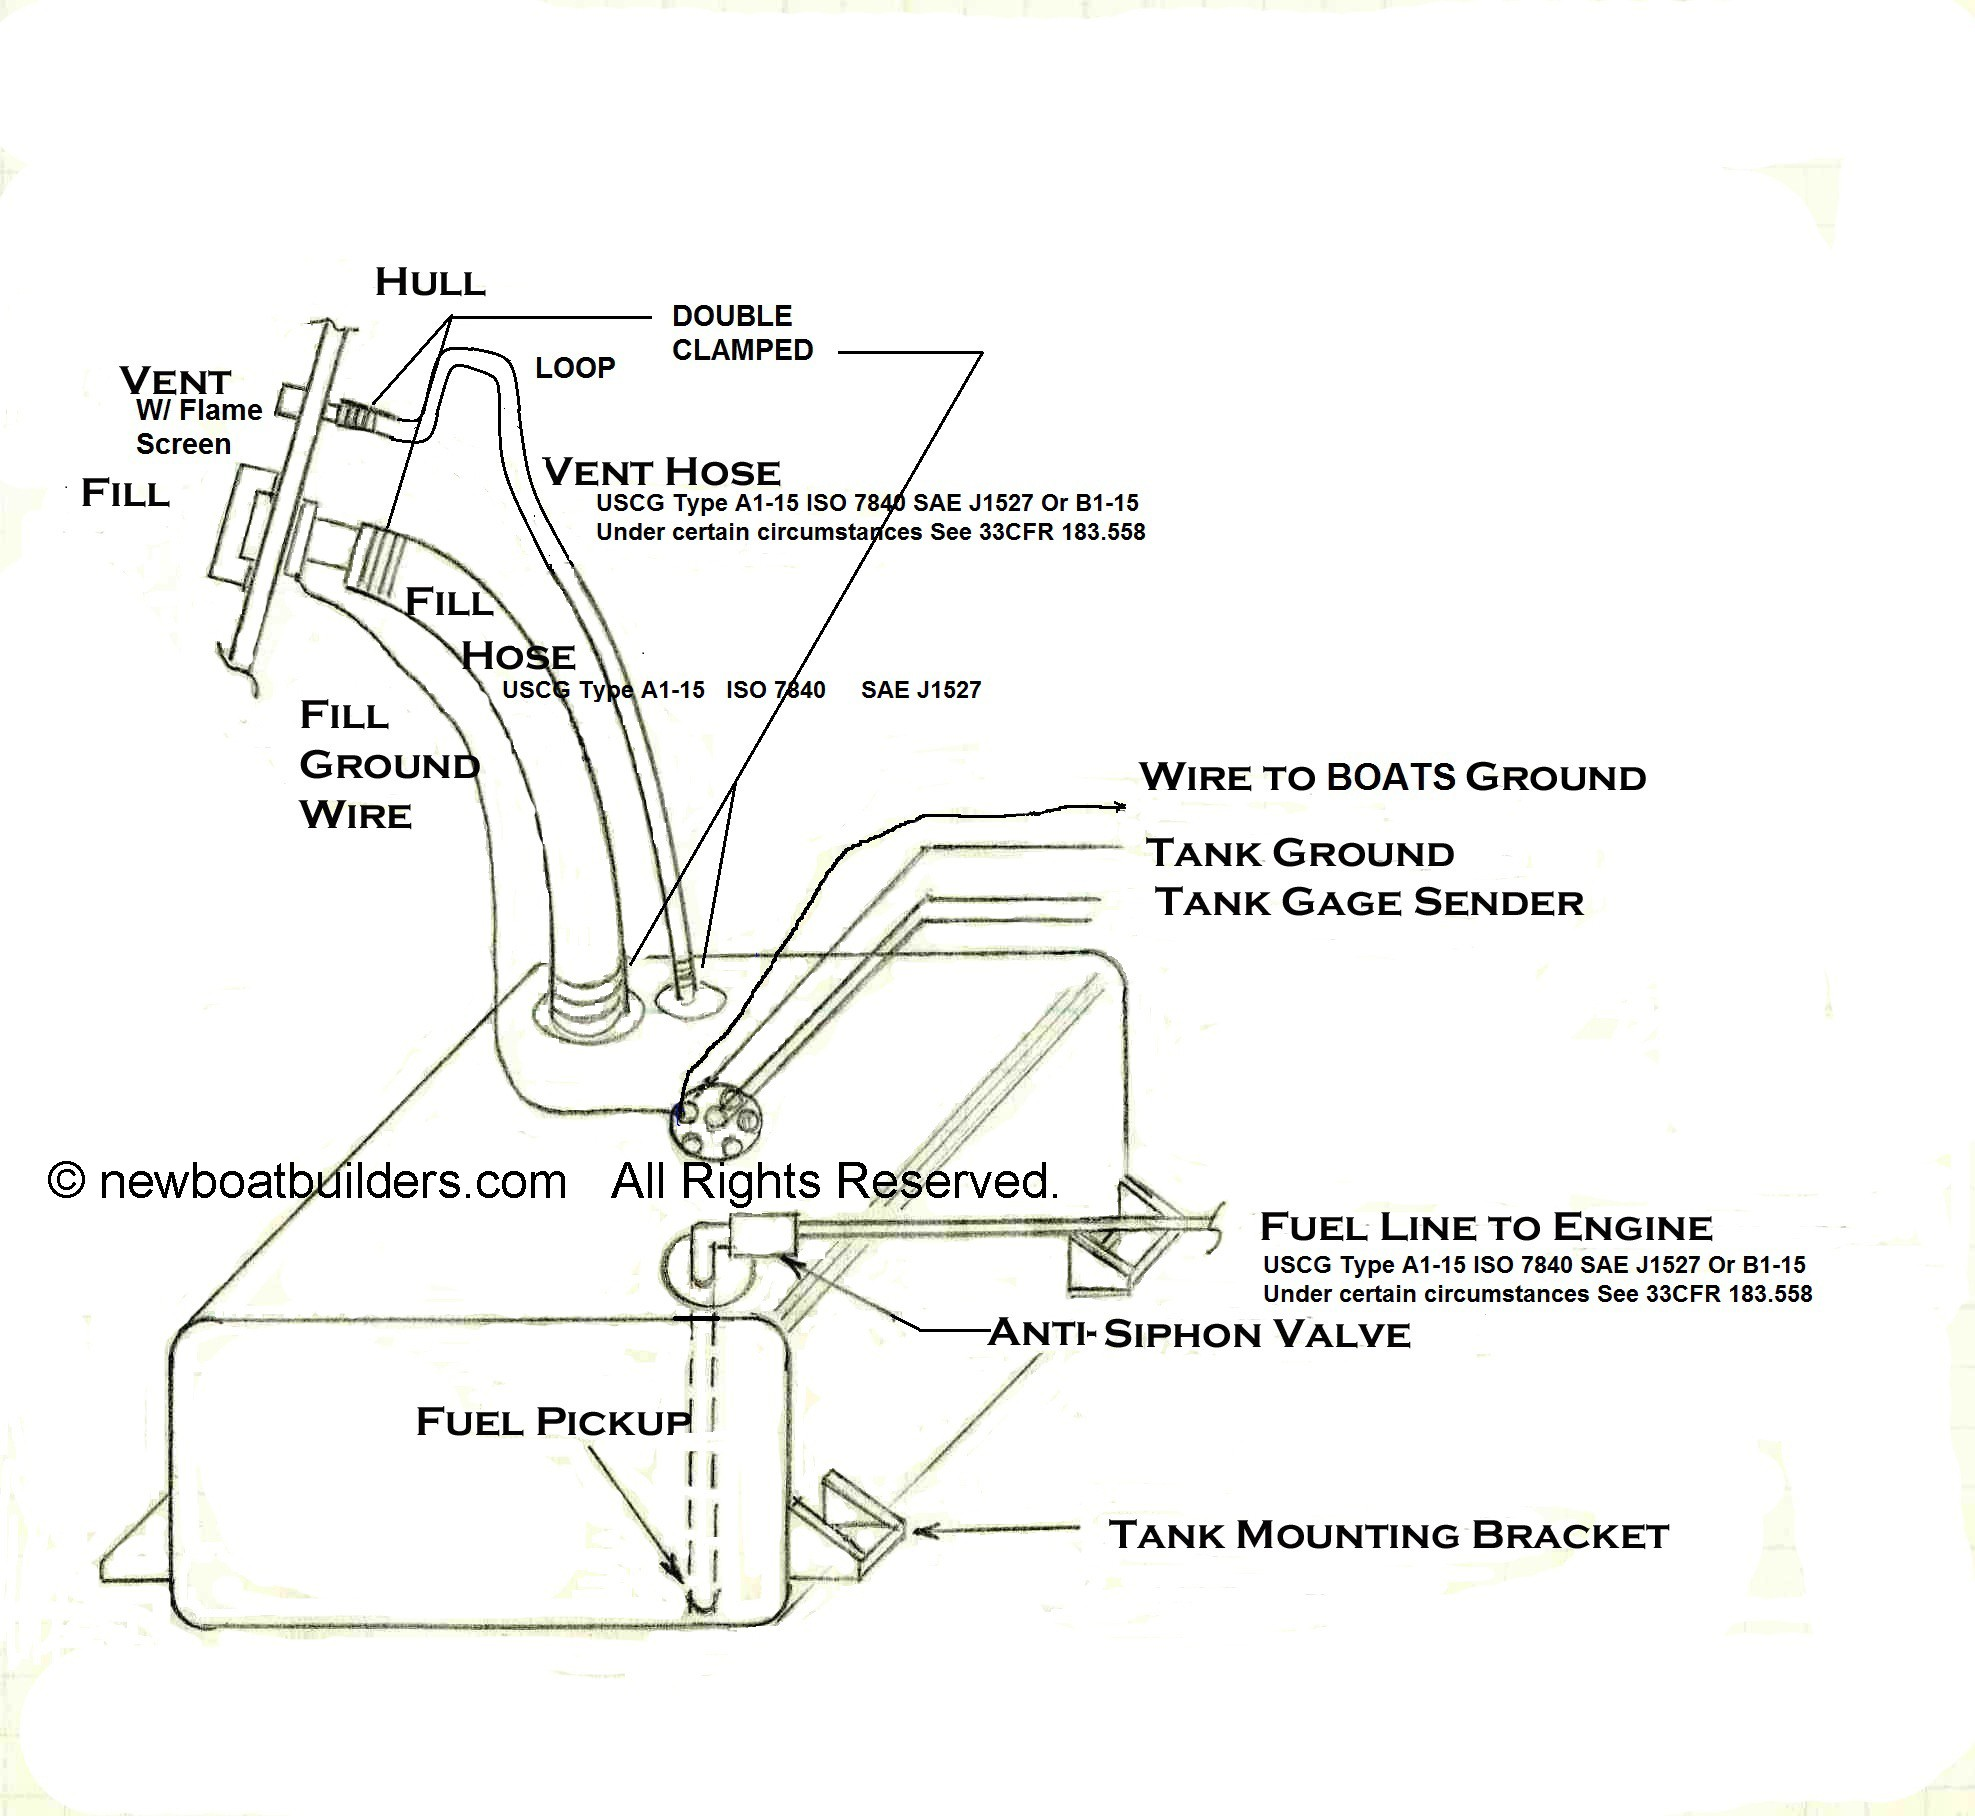 Car Fuel System Diagram Car Fuel Tank Diagram Car Fuel Tank Diagram Boat Building Of Car Fuel System Diagram